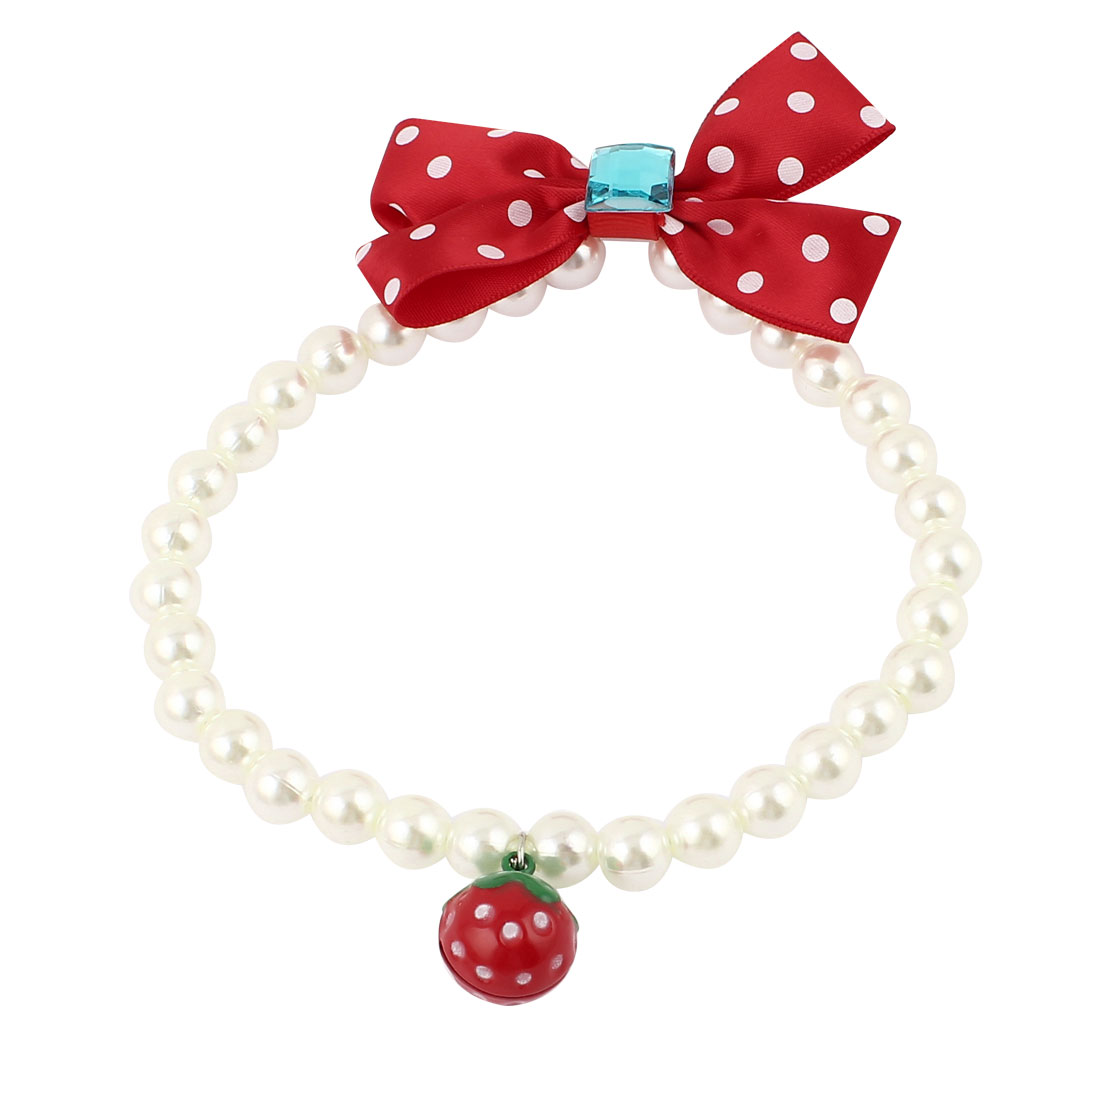 Metal Bell Pendant Bowknot Accent Pet Dog Plastic Beads Pearls Collar Necklace White Red M